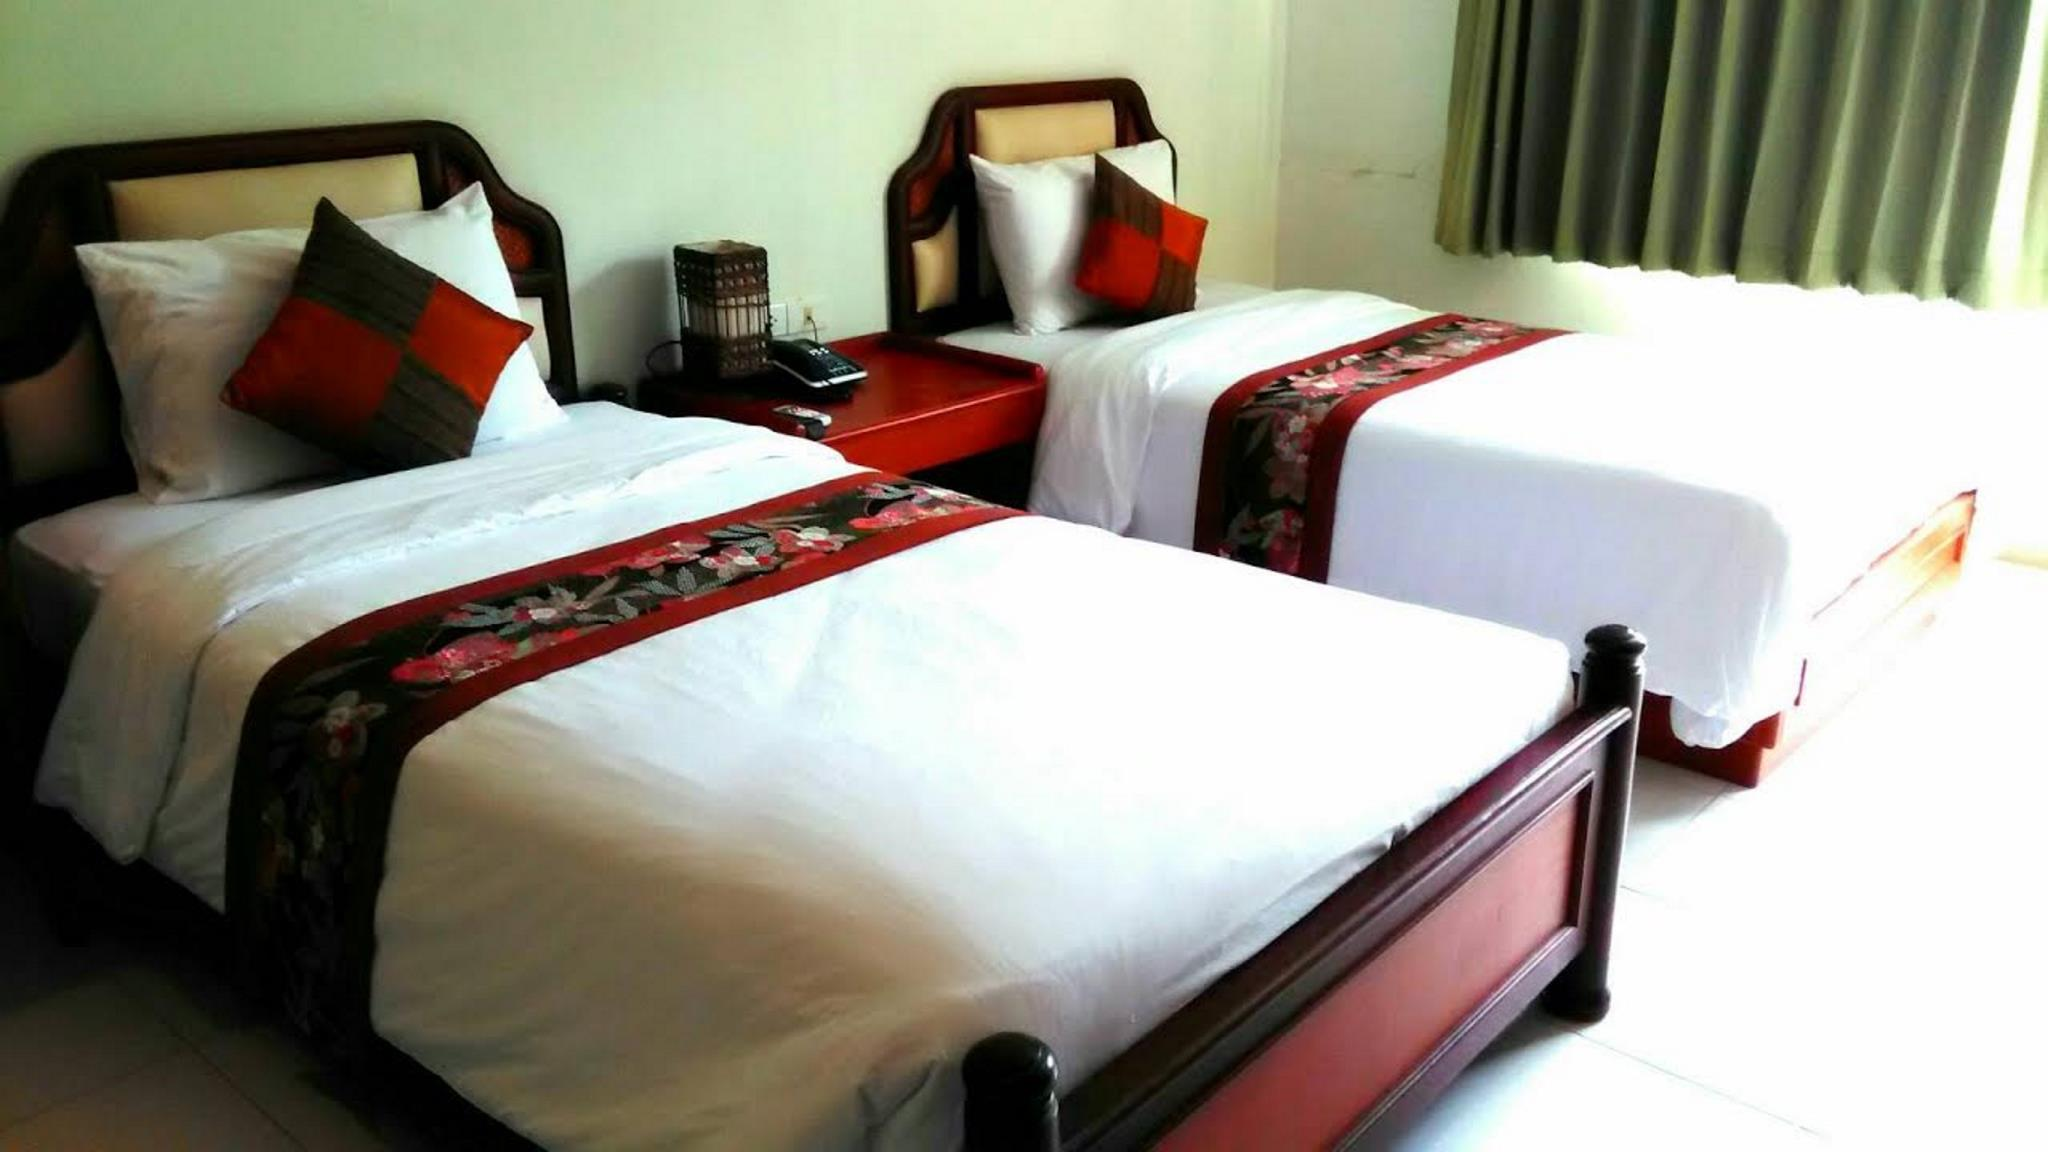 Standard Room Twin Beds : 1 standard bed